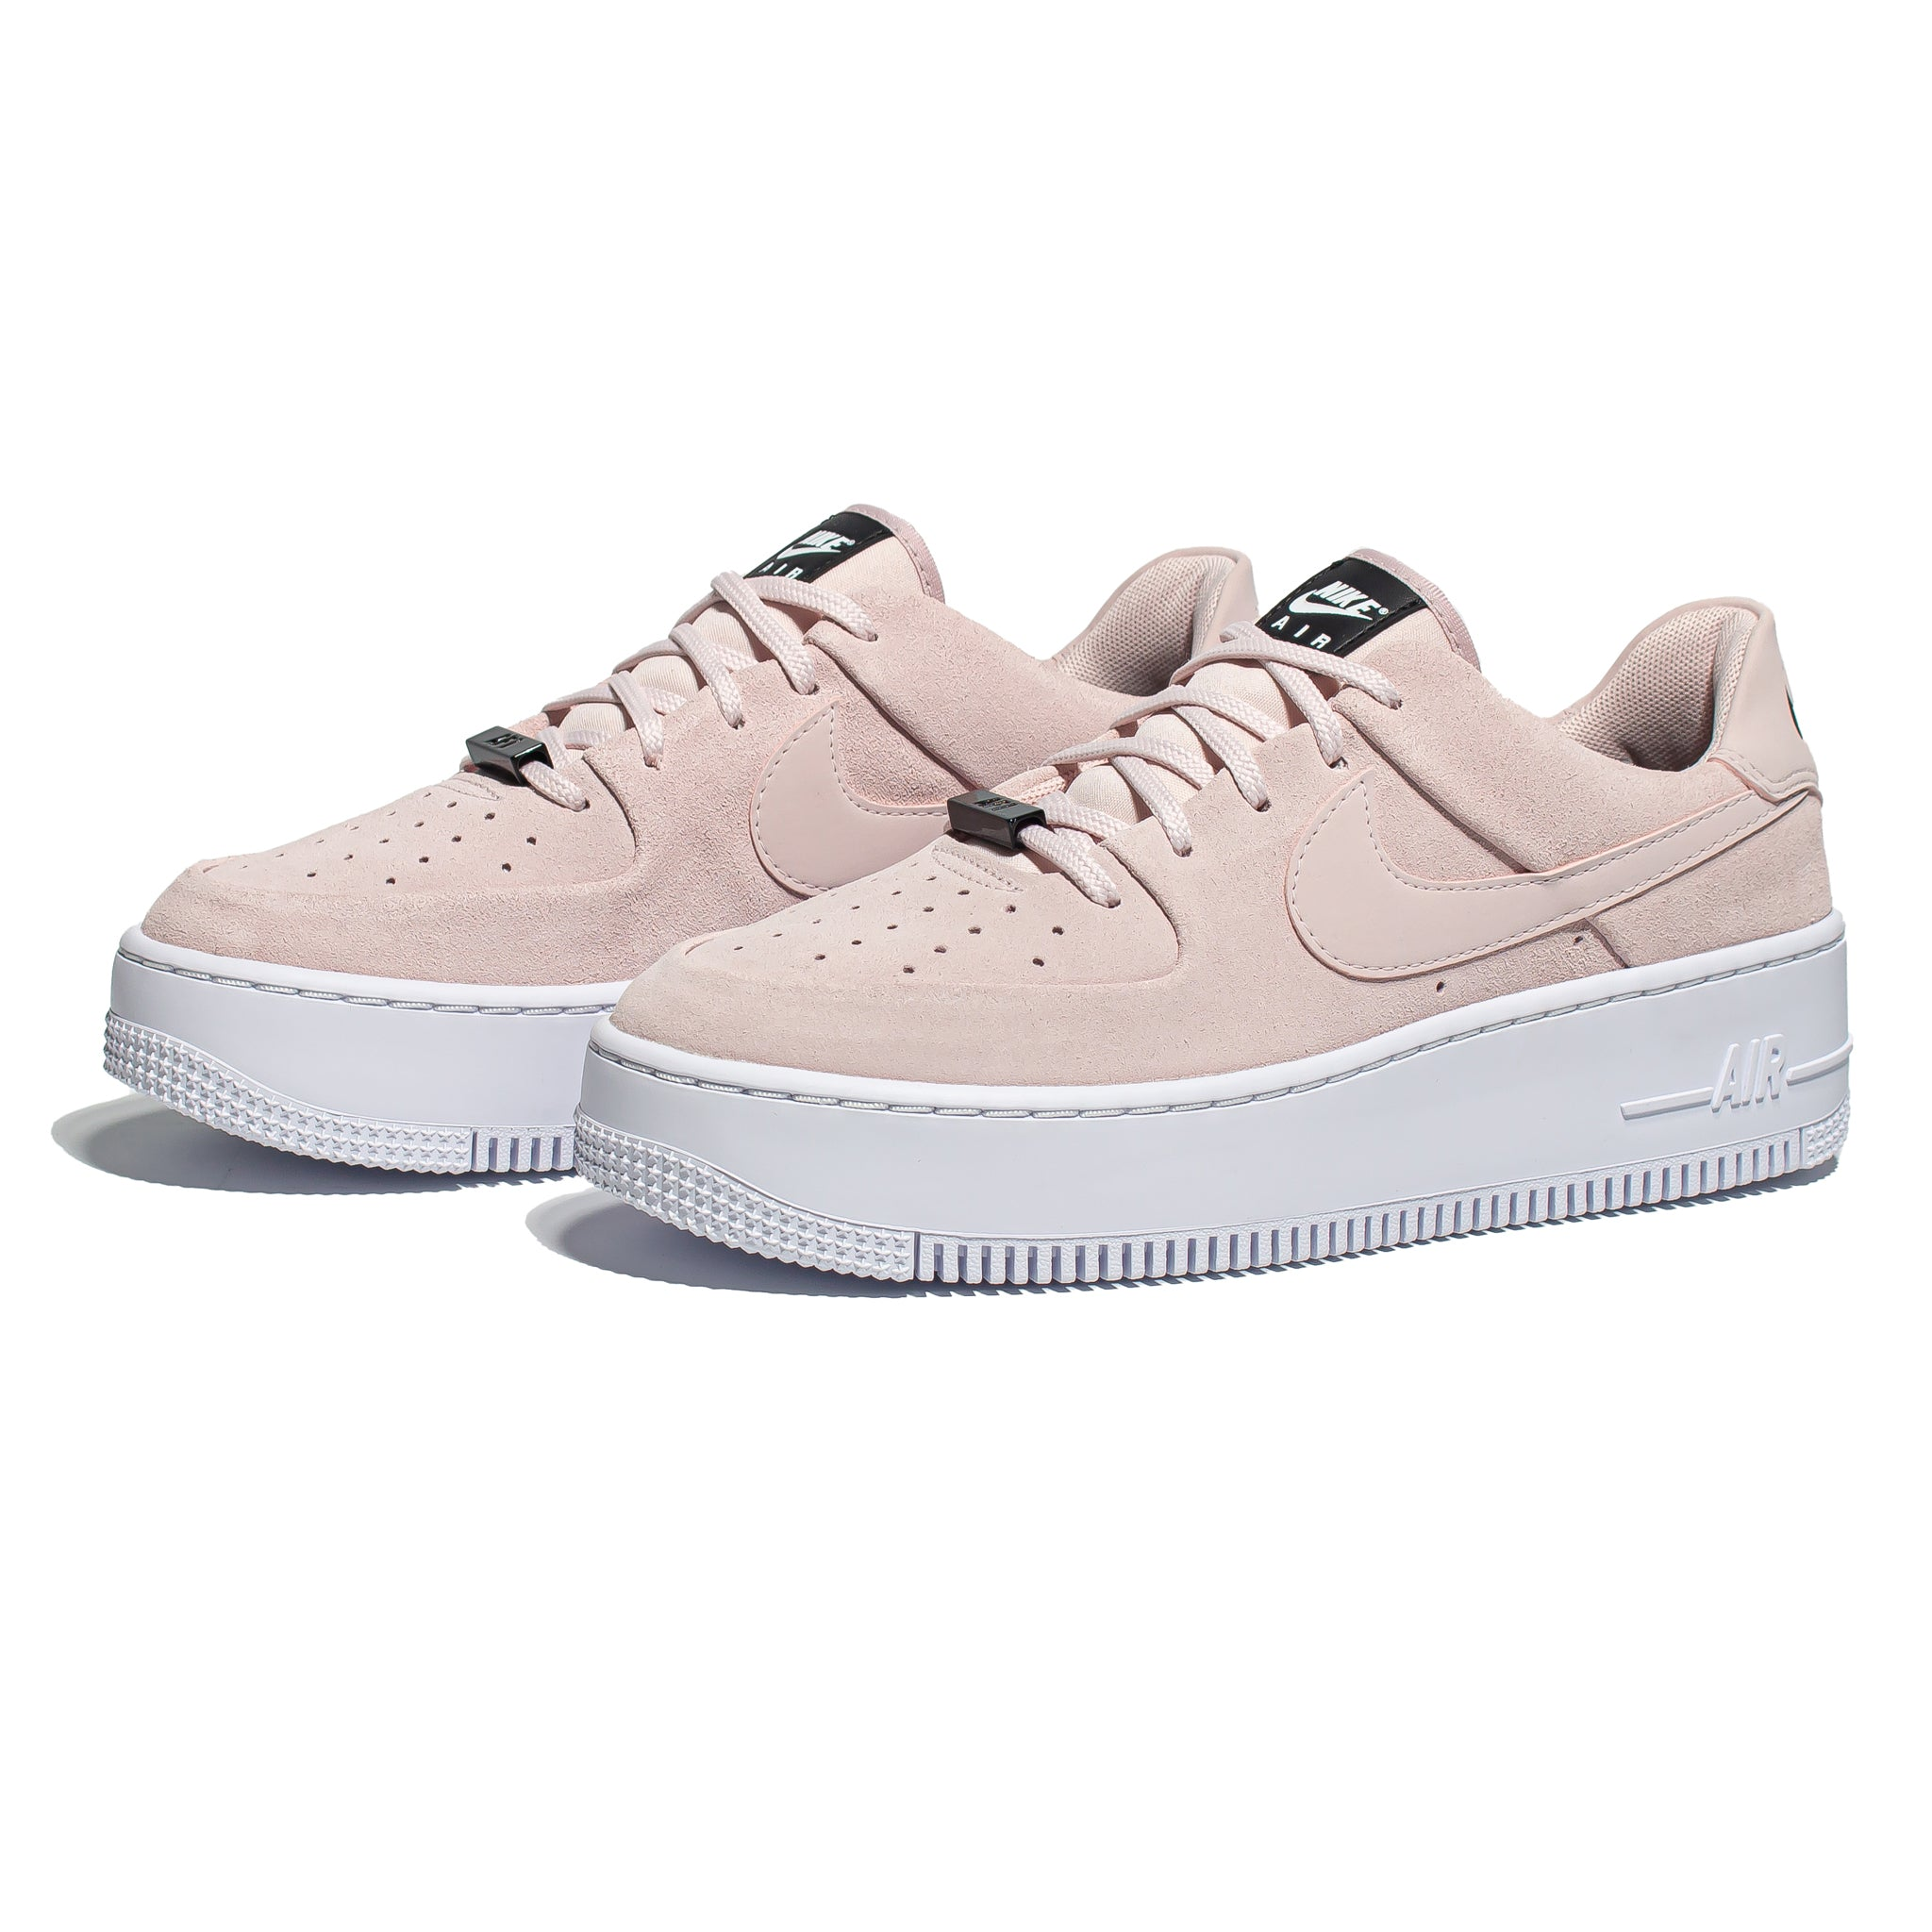 Nike Air Force 1 Sage Low 'Barely Rose'